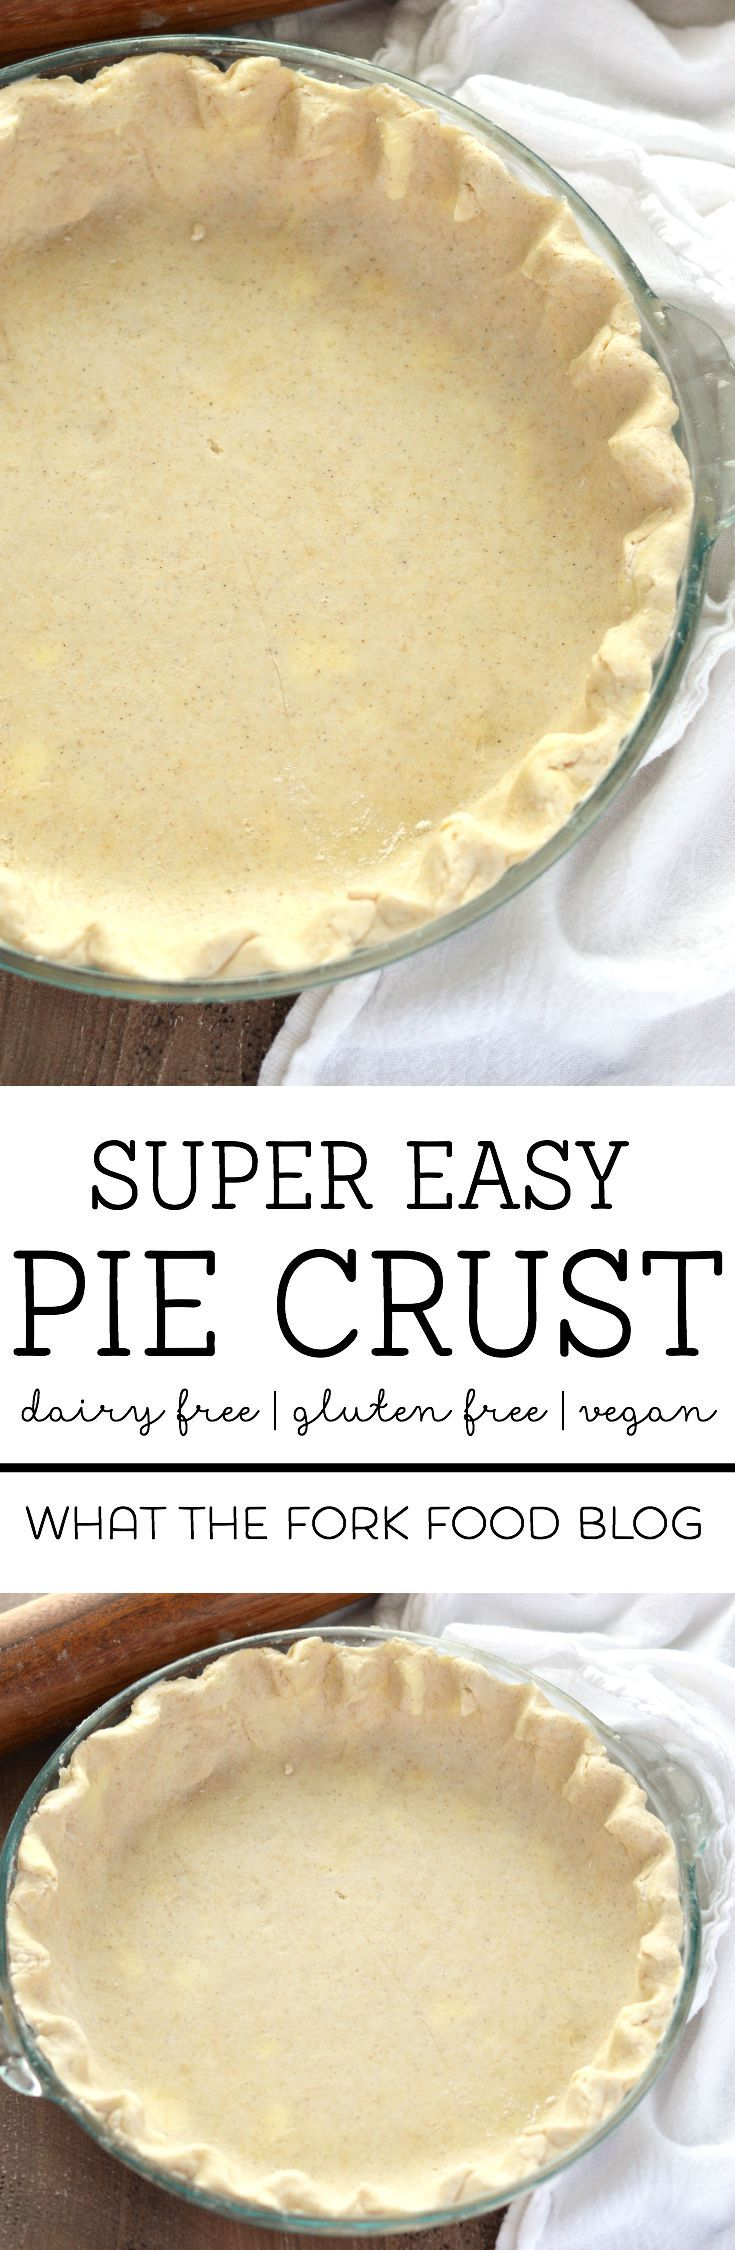 Gluten Free and Diary Free Pie Crust Recipe from What The Fork Food Blog…